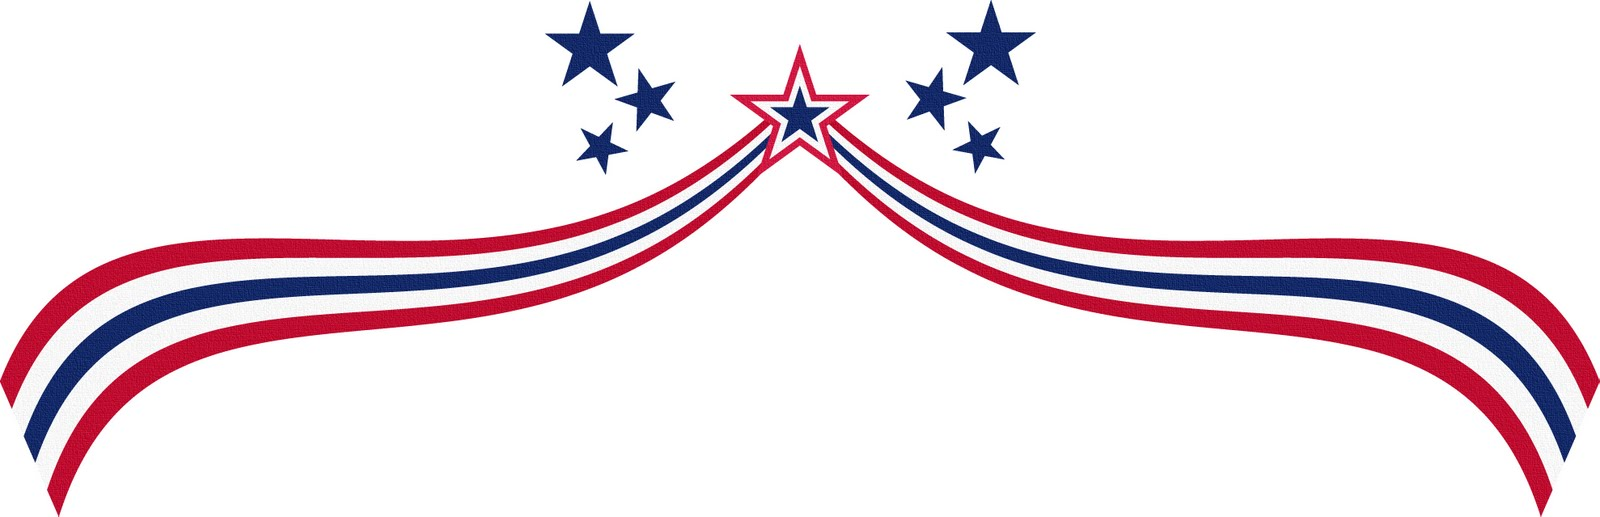 Free Clipart 4th Of July Borders School -Free Clipart 4th Of July Borders School Clipart-10